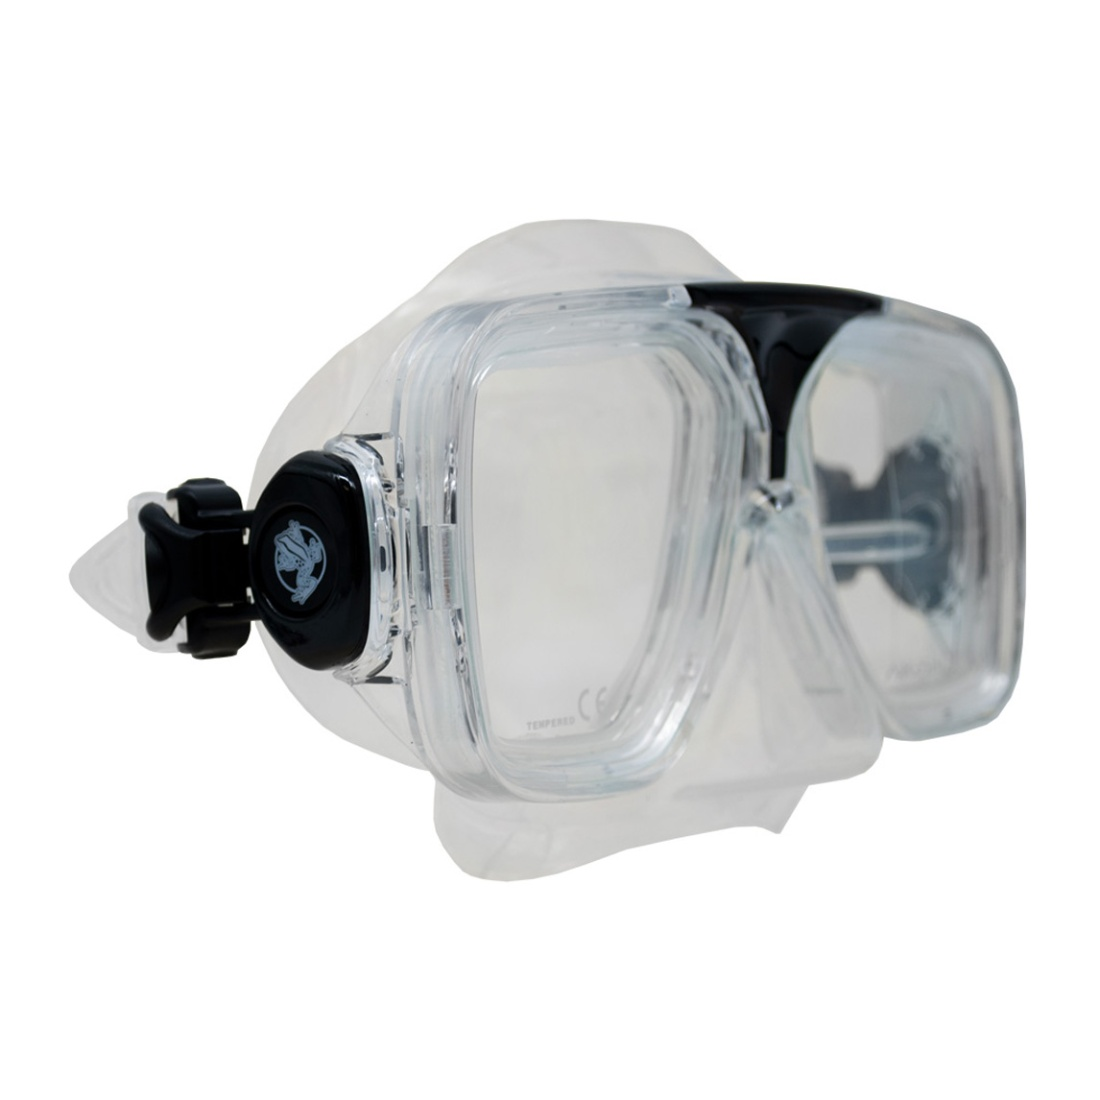 BREEZE MASK - AKM280 CL Right